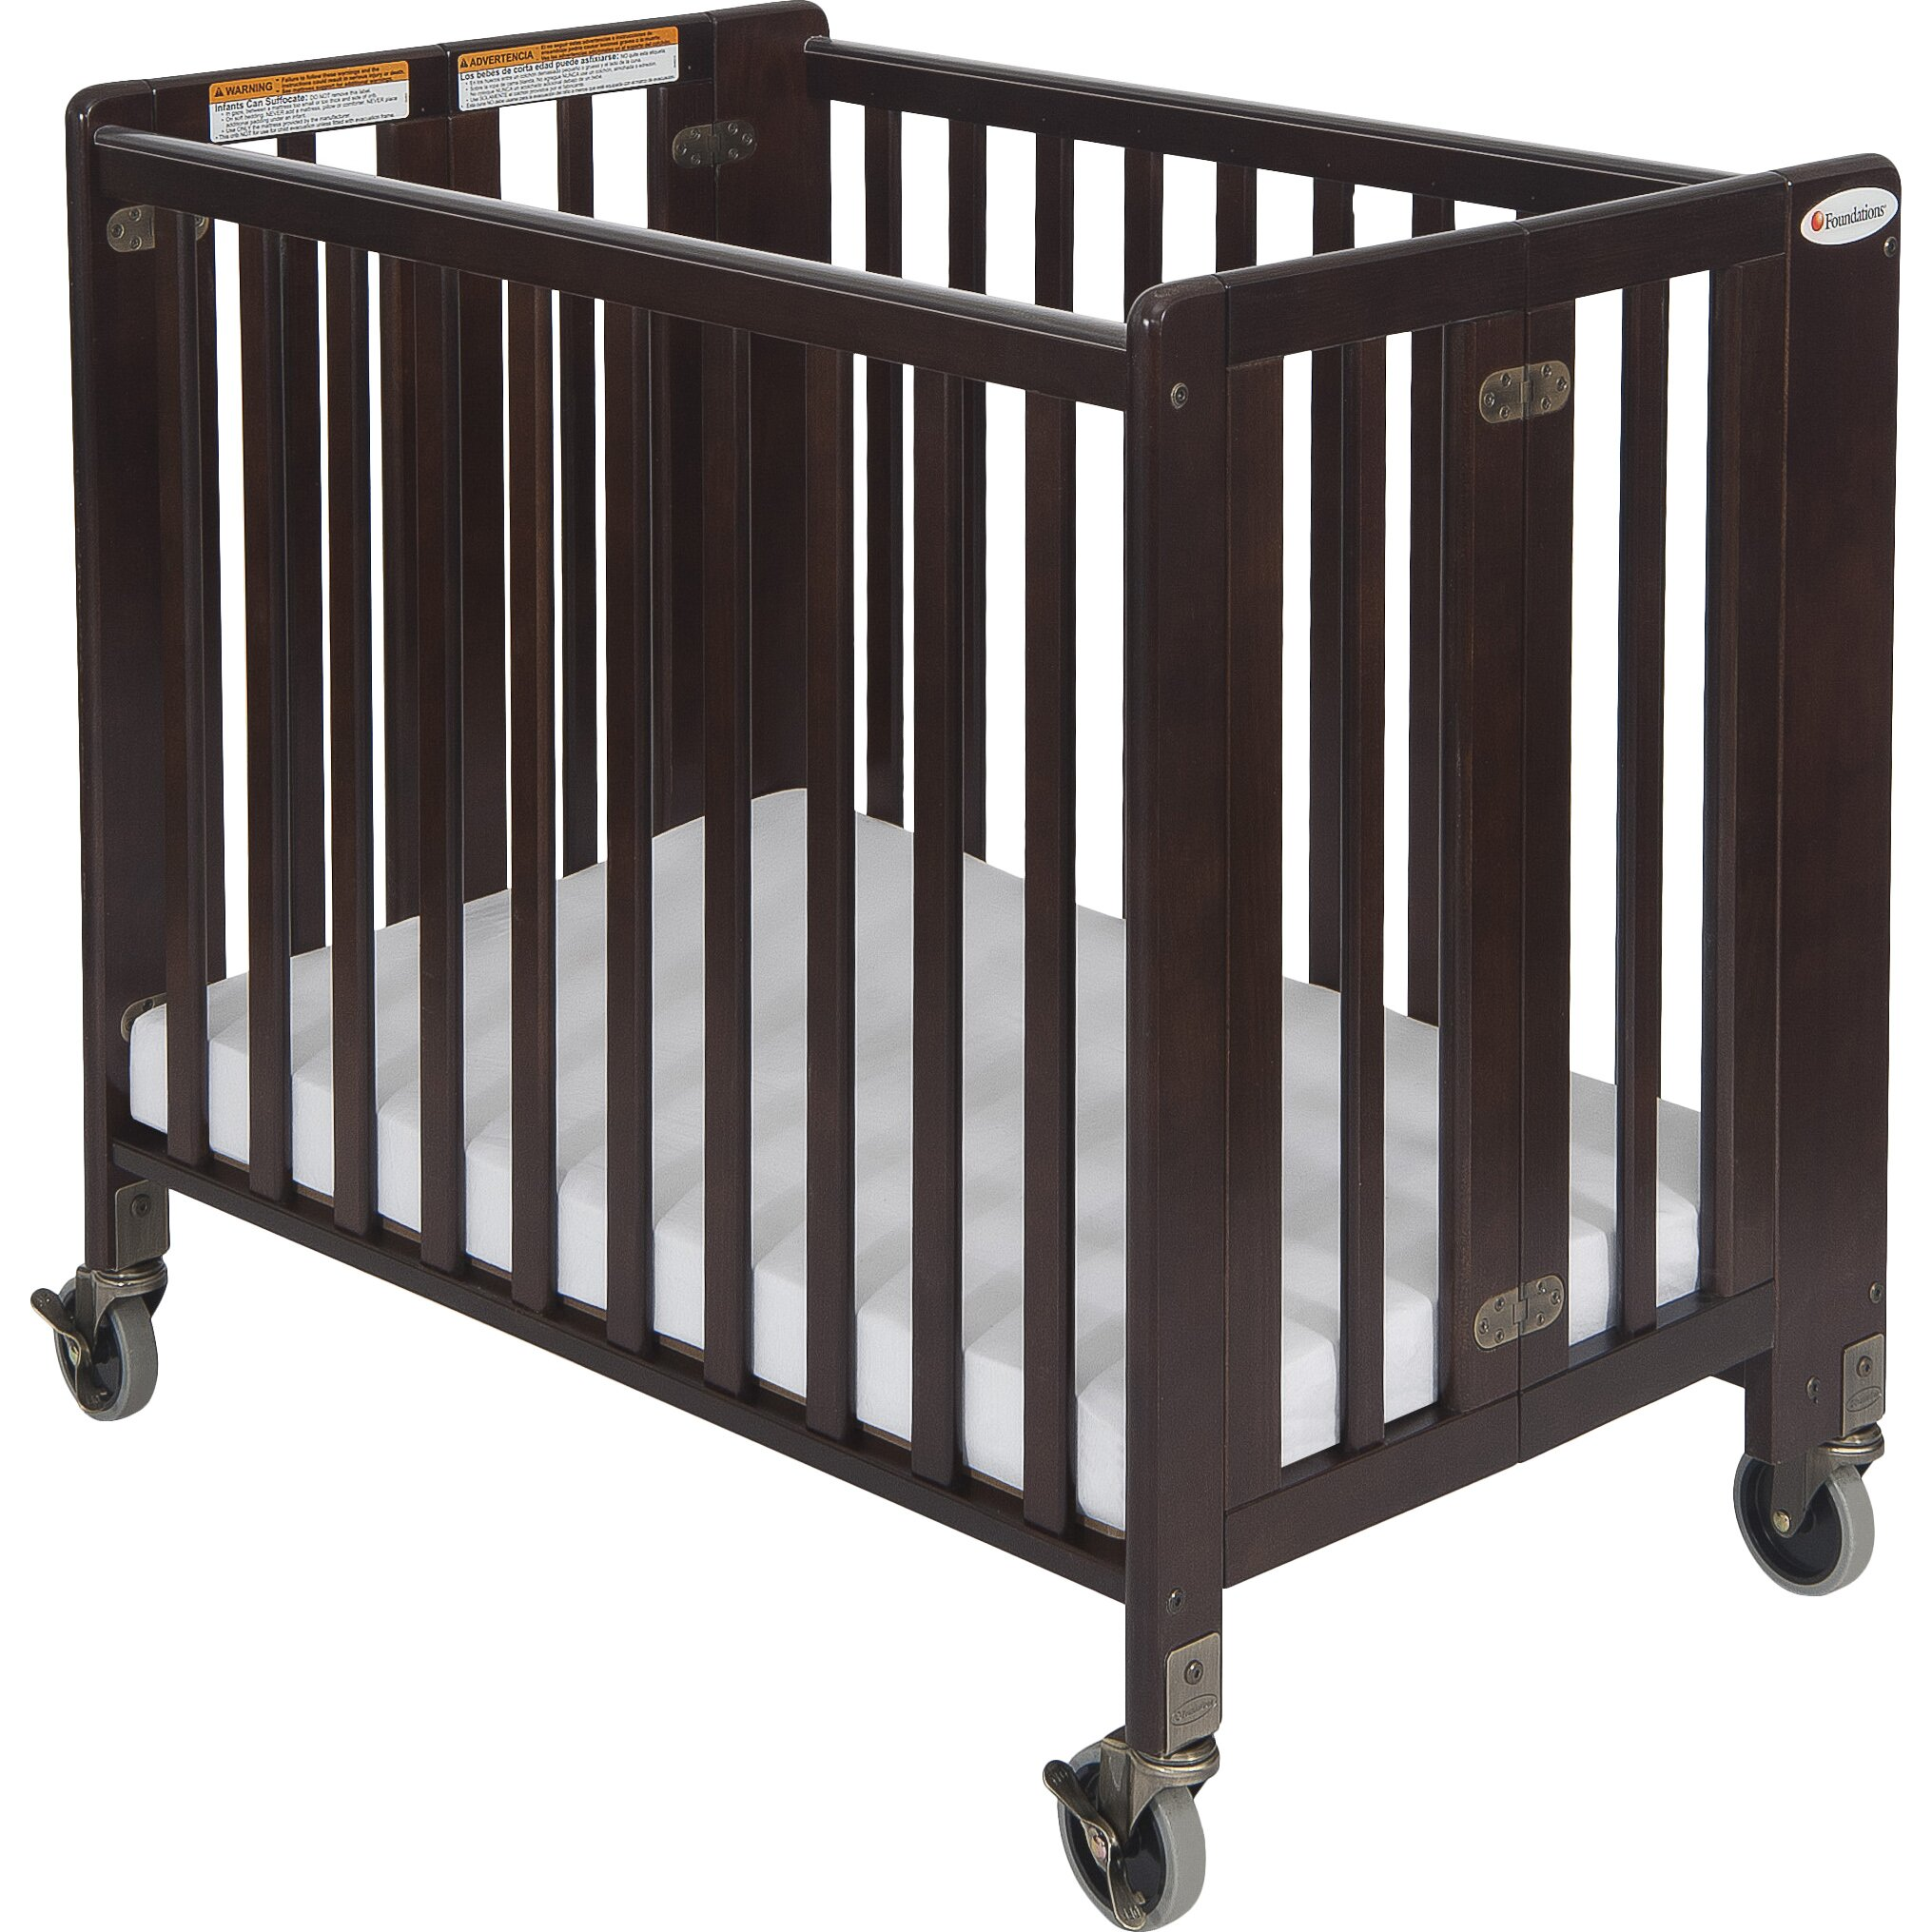 Foundations Hideaway Storable Wood Convertible Crib with